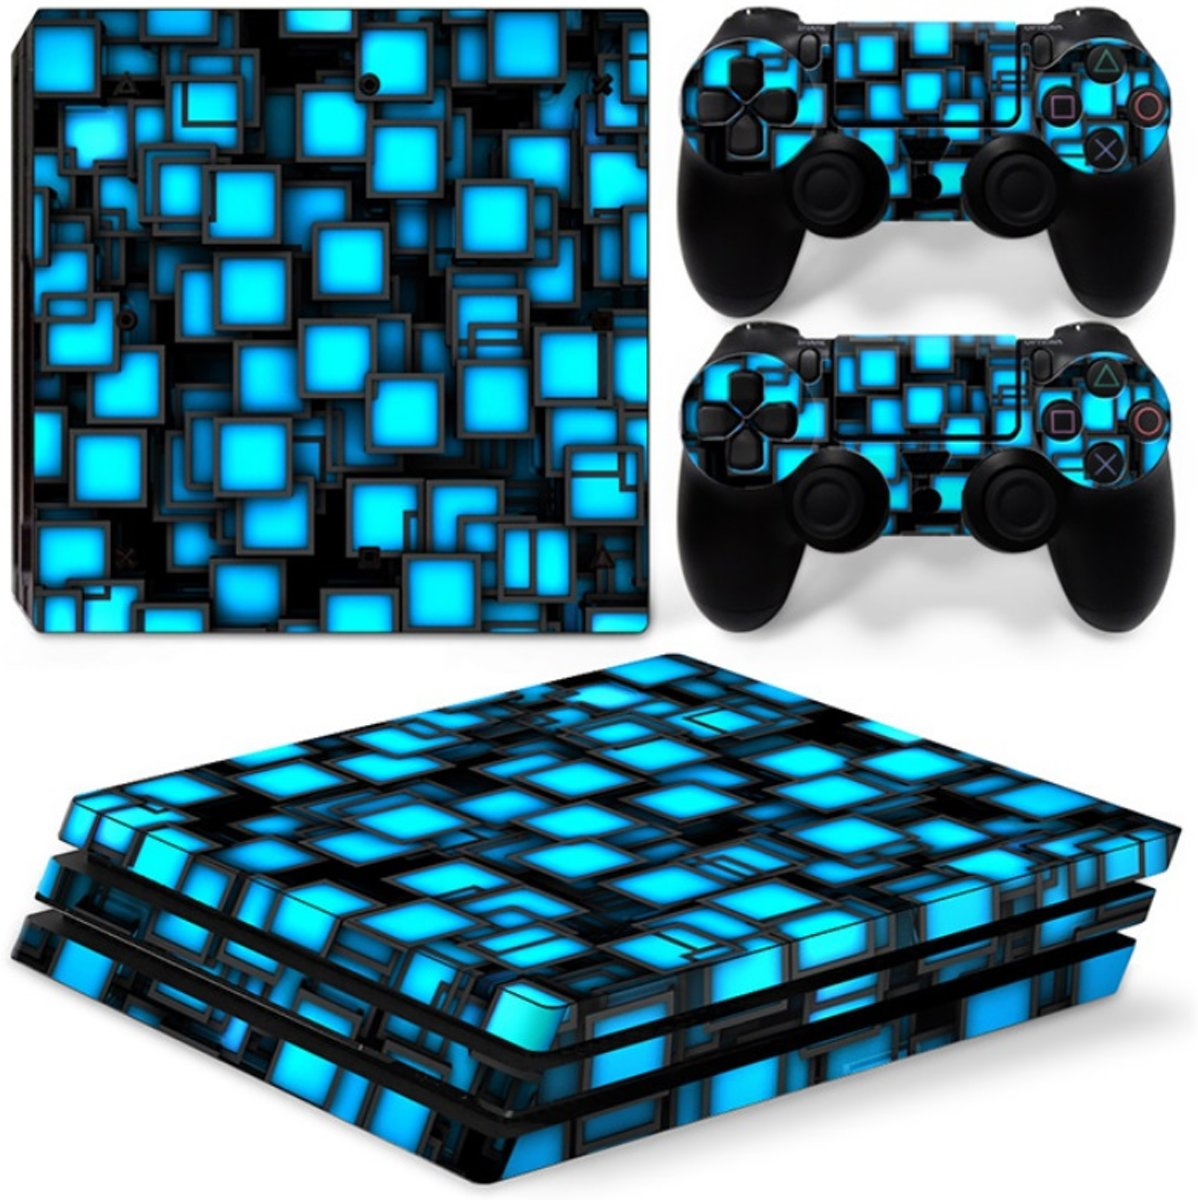 Playstation 4 Pro Sticker | Playstation 4 Pro Console Skin | Blue Boxes | Playstation 4 Pro Blauwe vierkantjes Skin Sticker | Console Skin + 2 Controller Skins